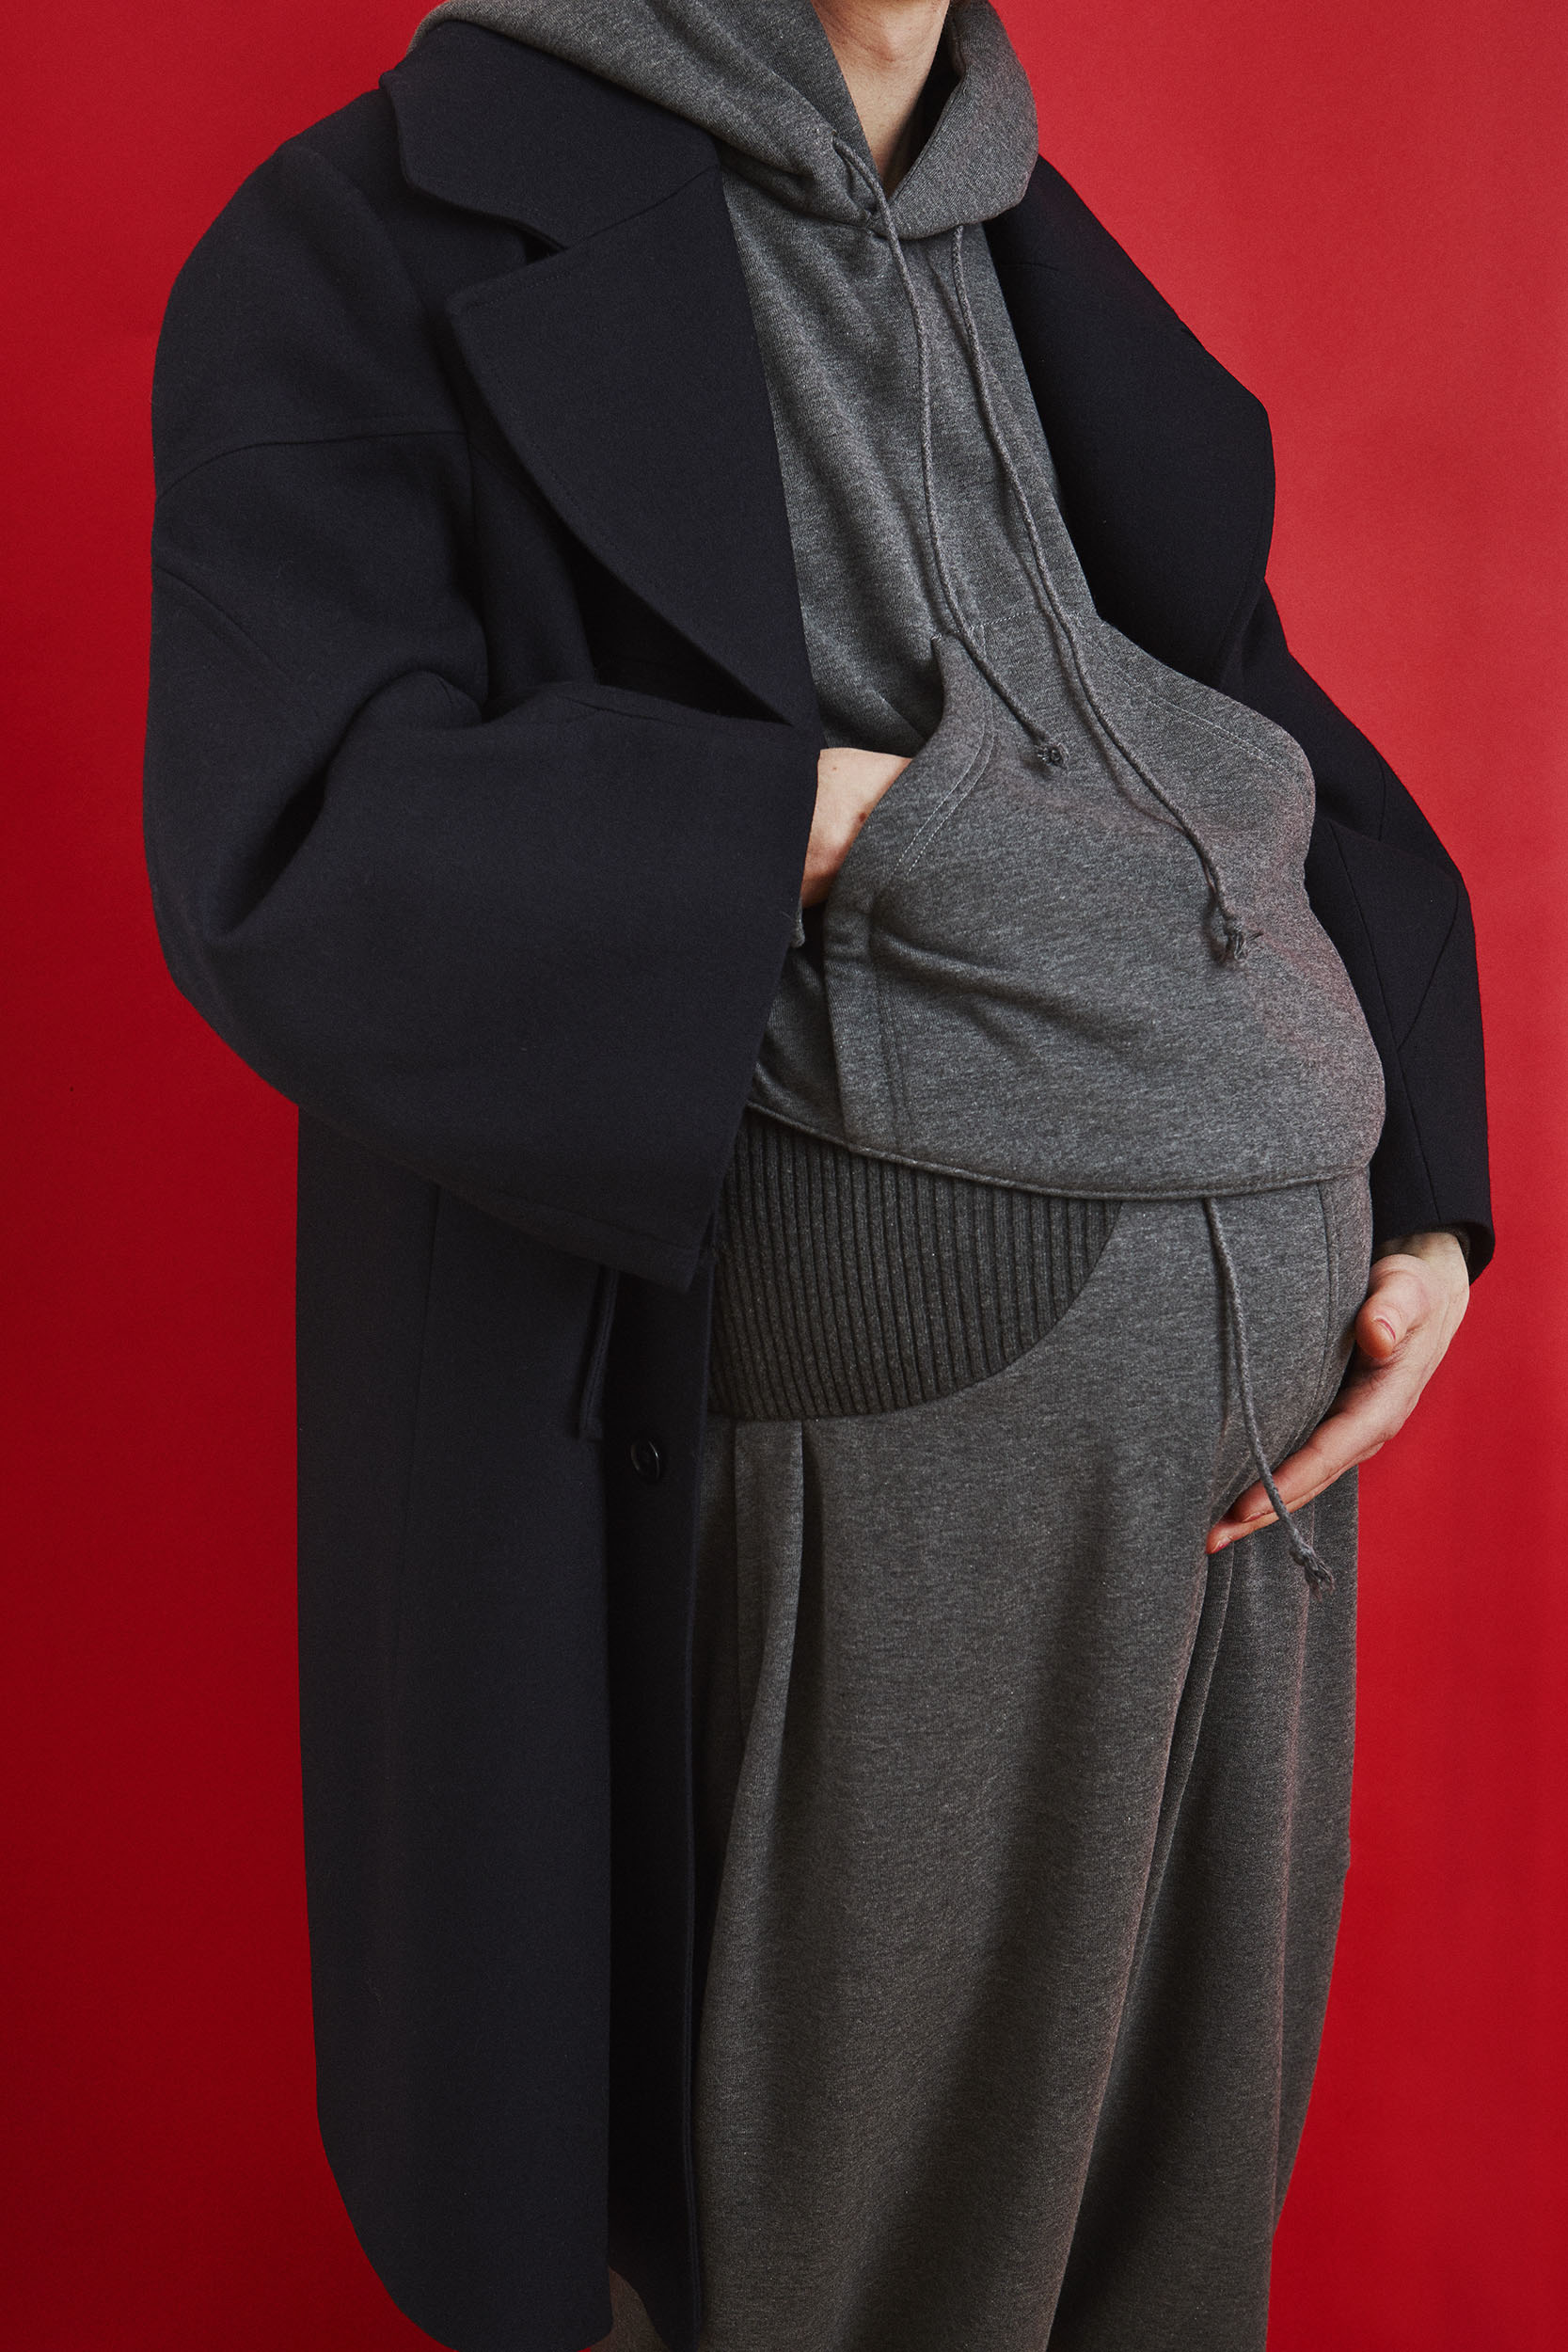 You Jung Kim: Imagining the Ideal through the Pregnant Male Cyborg